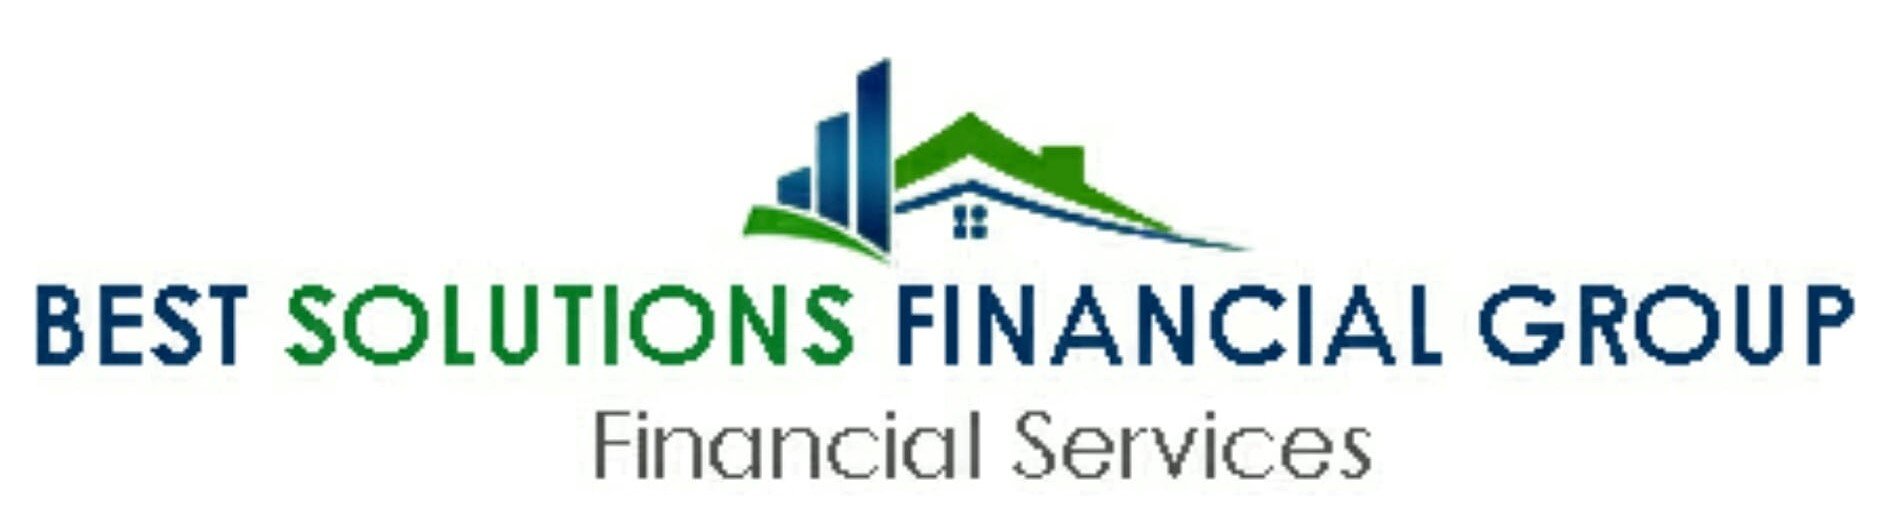 Best Solutions Financial Group Logo